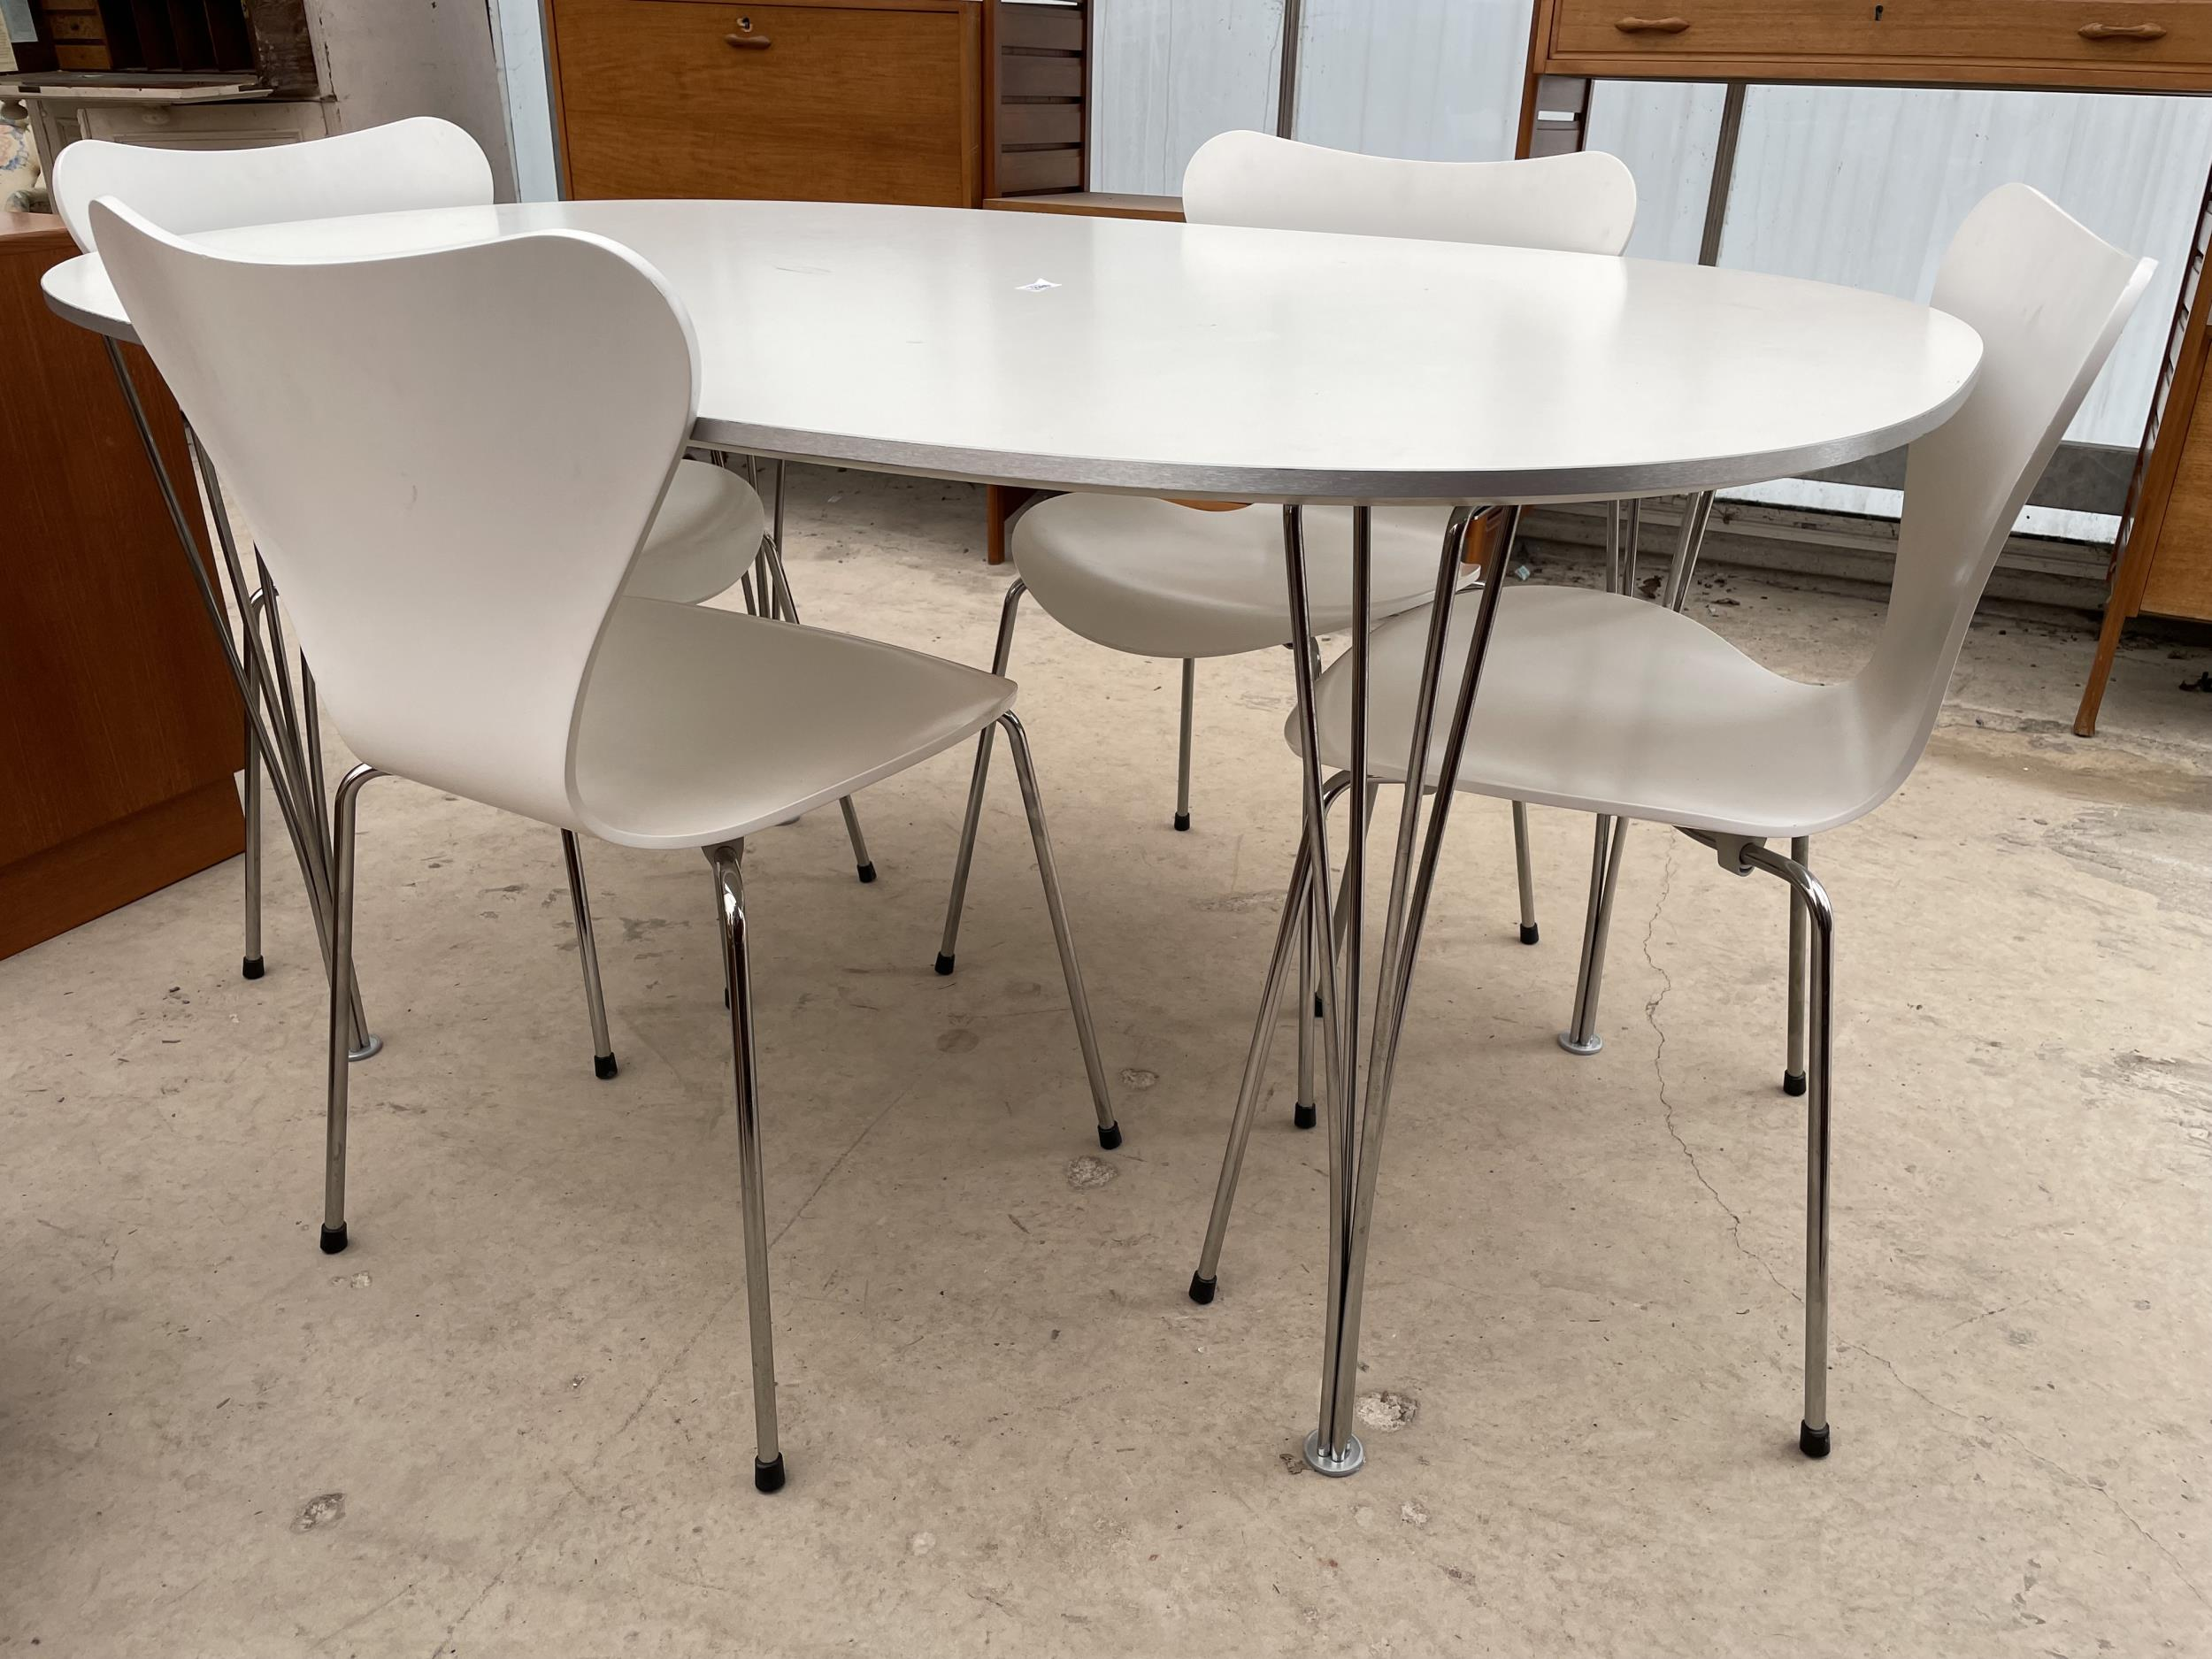 A WHITE OVULAR DINING TABLE BEARING LABEL 'MADE IN DENMARK, REPUBLIC OF FRITZ HANSEN DESIGN: PIET - Image 2 of 5